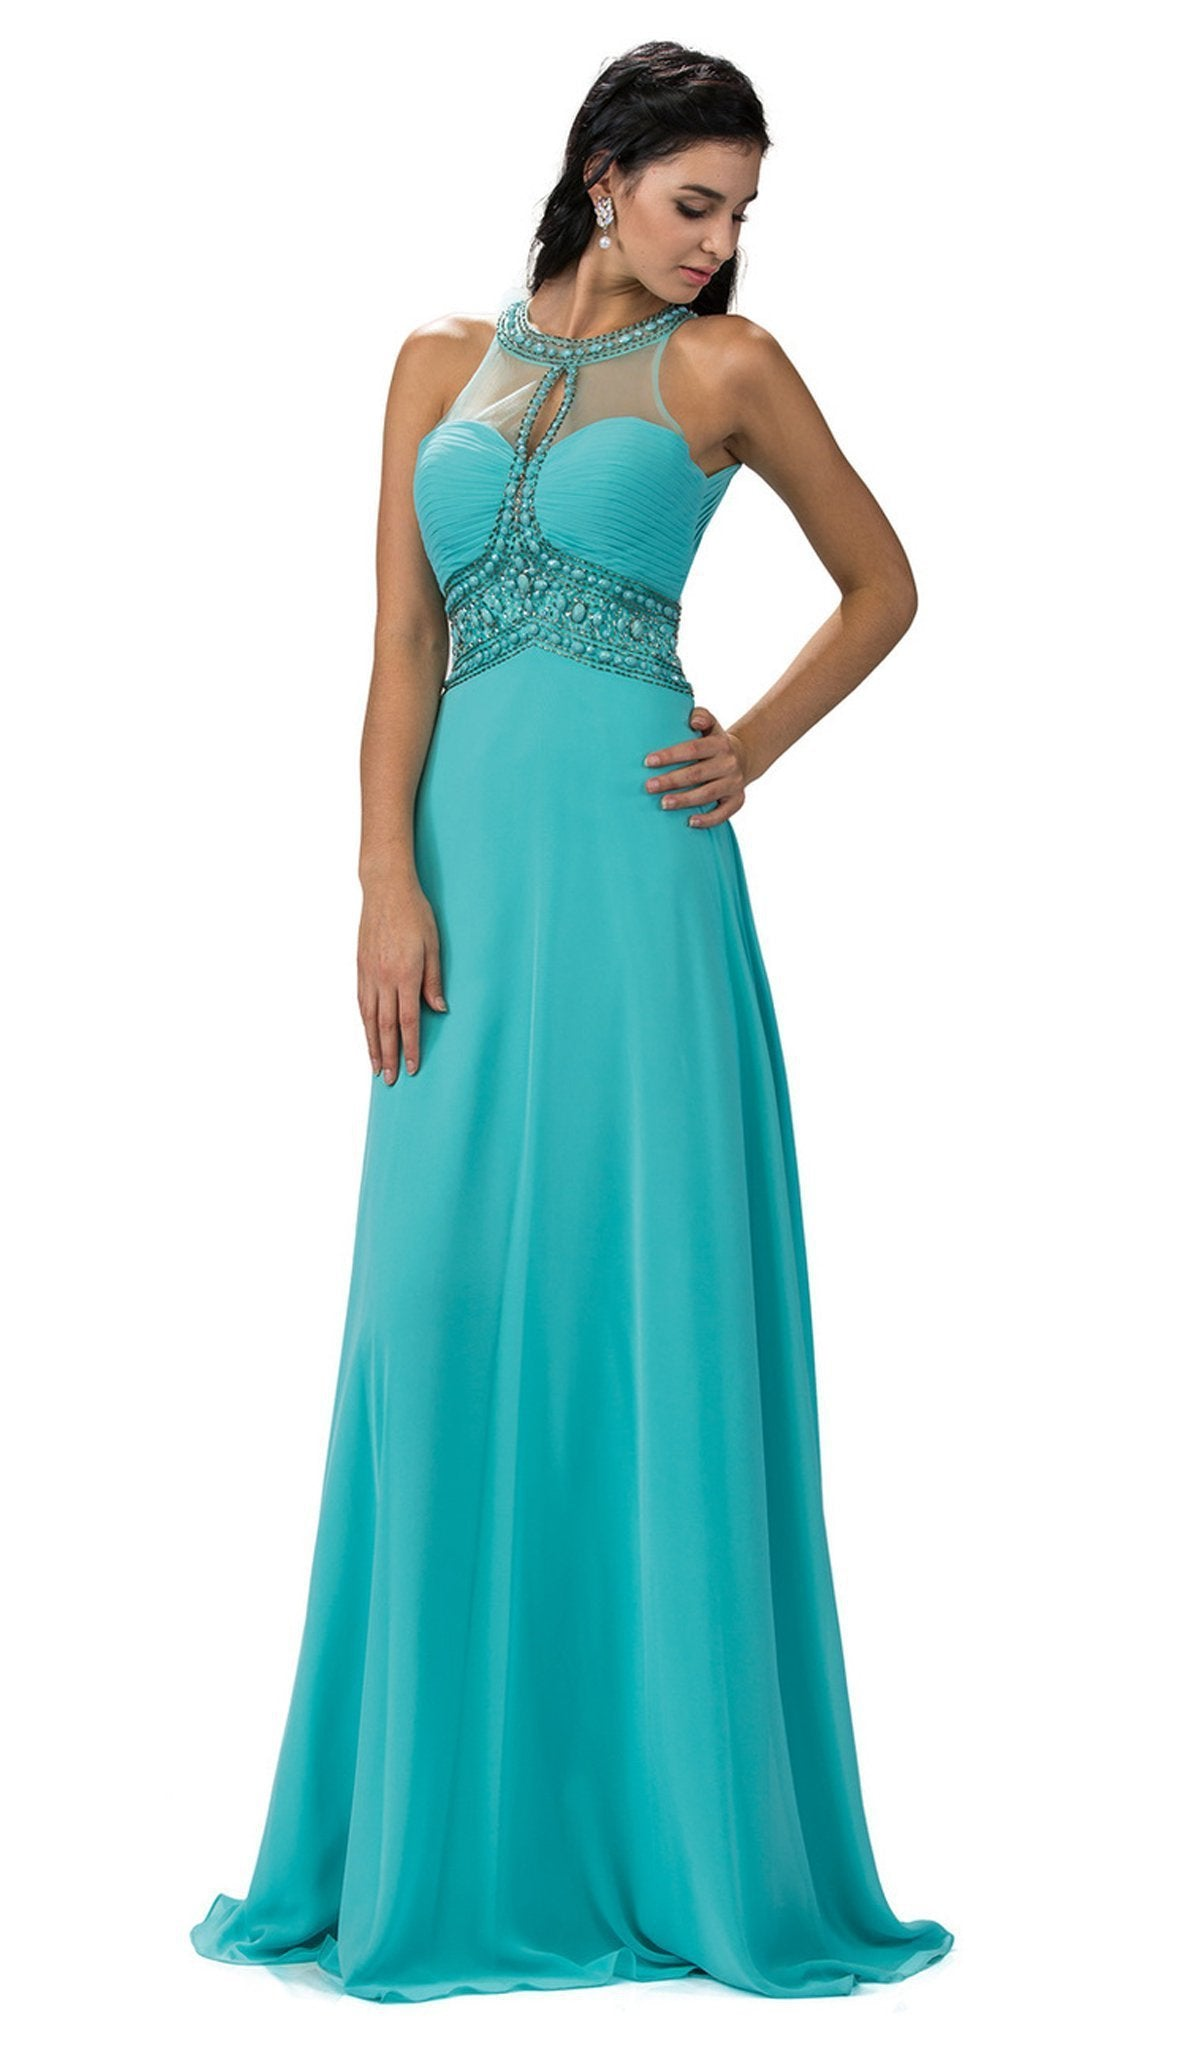 Dancing Queen - 9270 Illusion Keyhole Cutout Halter Long Prom Gown